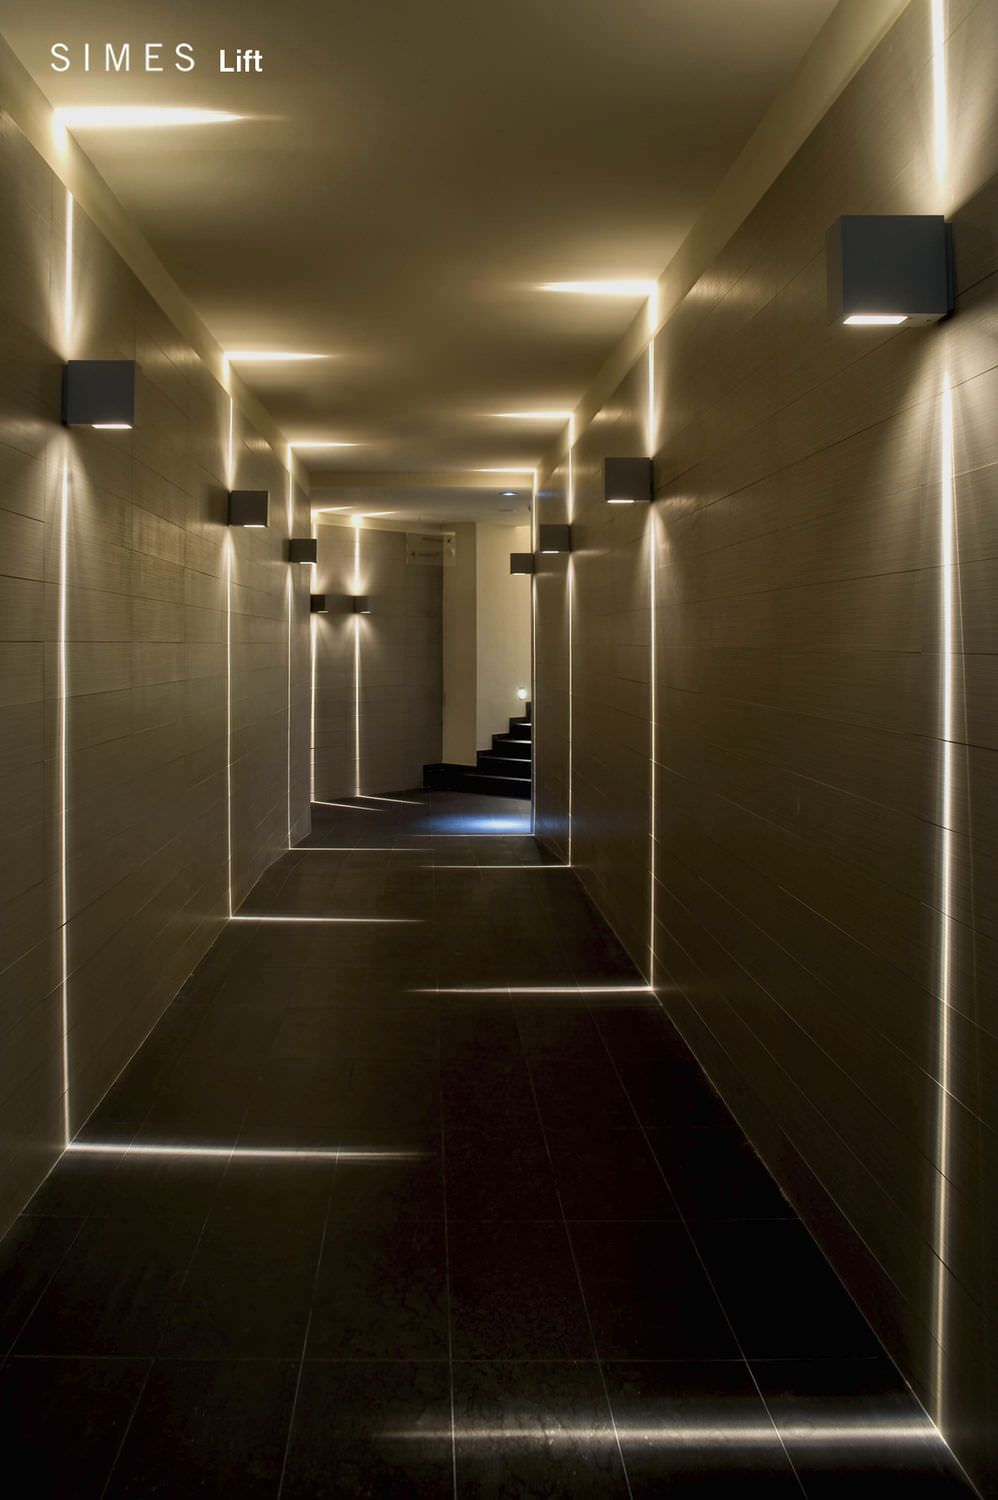 funky lighting ideas. Wall Effect Of A Rigorous Geometry Design, LIFT By Simes Fits Perfectly In Different Architectural Environments. I Like It For The Light, Not Geometry. Funky Lighting Ideas